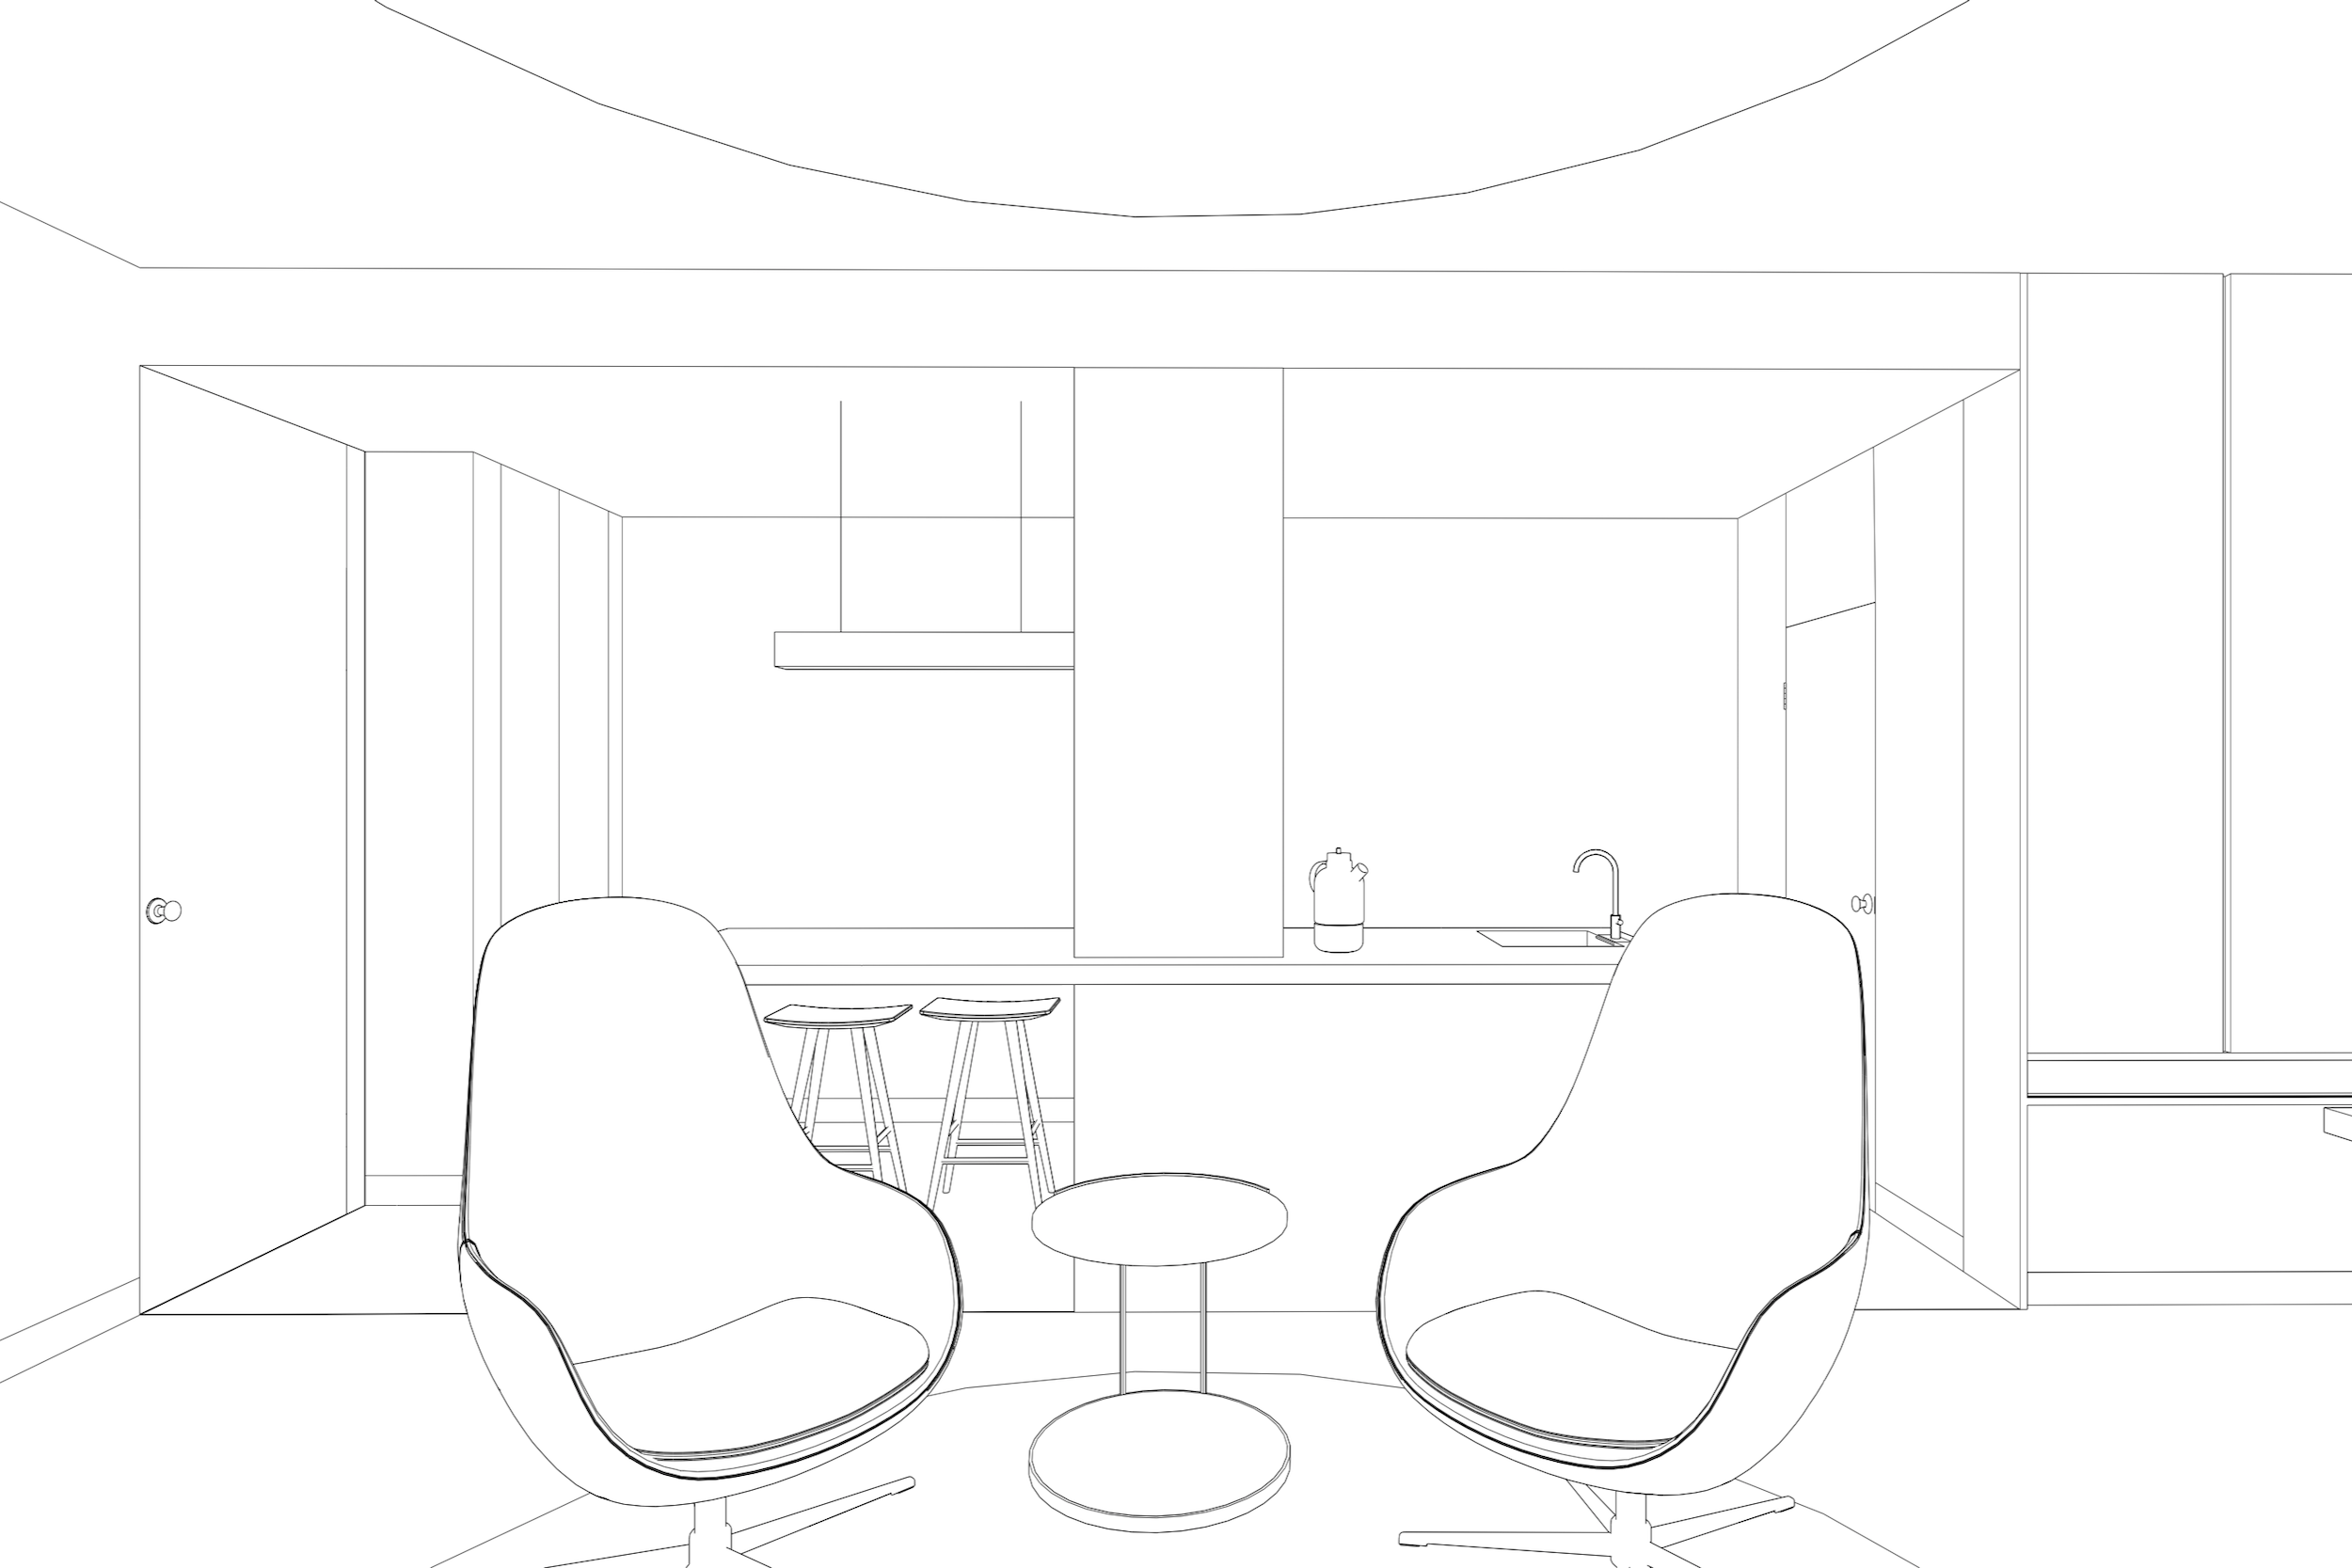 Line rendering of Lola Cwikowski studio office project, showing recording set with interview chairs and kitchenette.